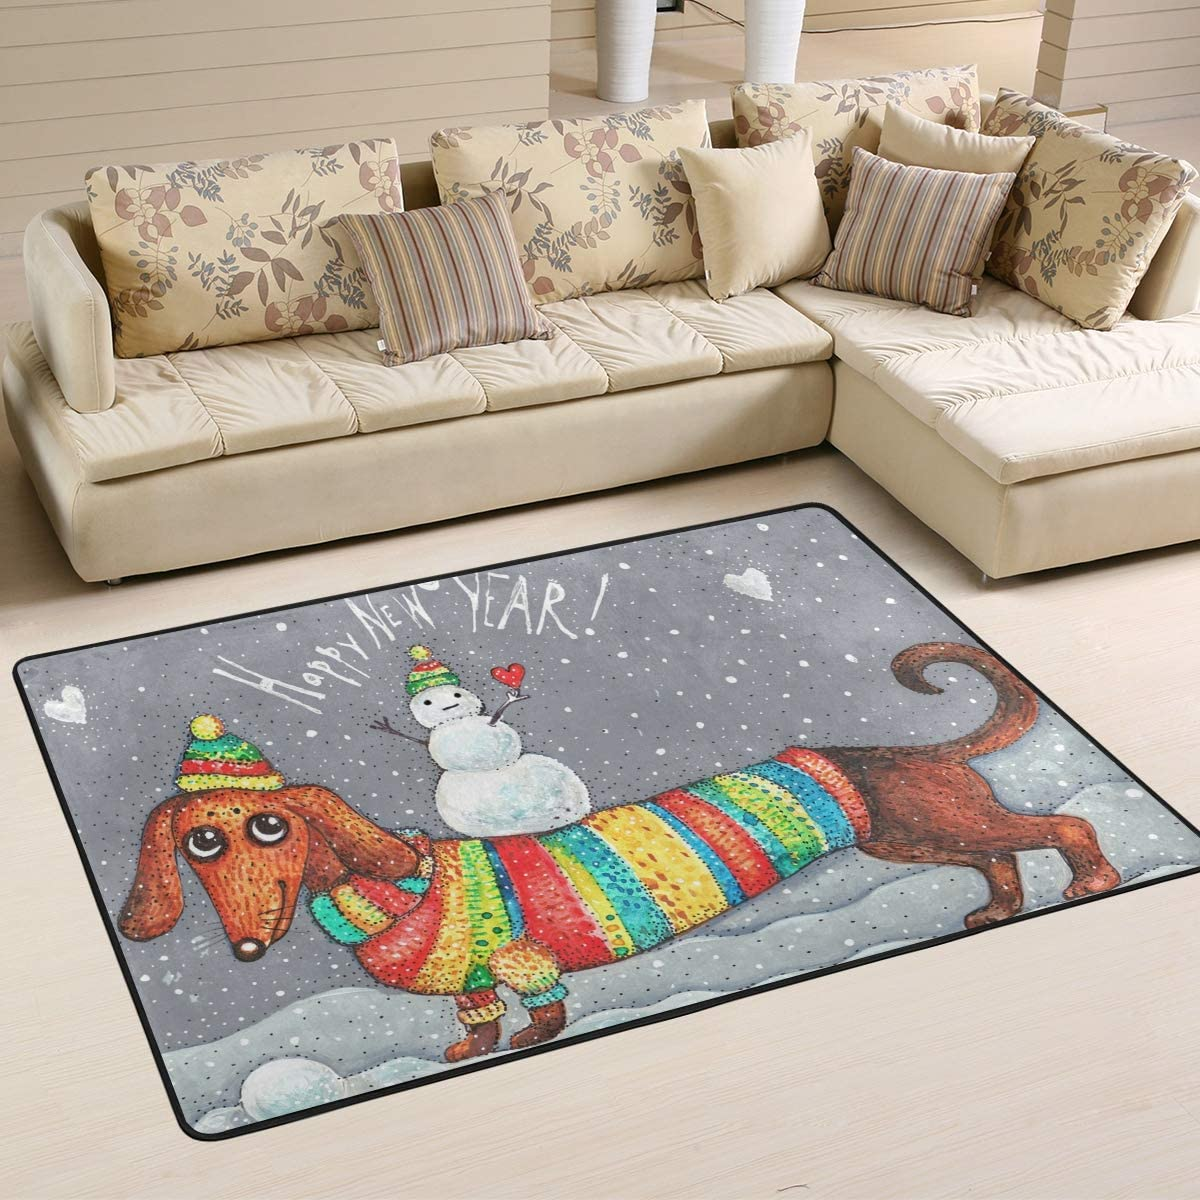 Wamika Dachshund Snowman Doormat Christmas Year Snow Indoor Outdoor Rug for Kitchen Living Room Bedroom Outside Patio Inside Entry Way, 6 x 4